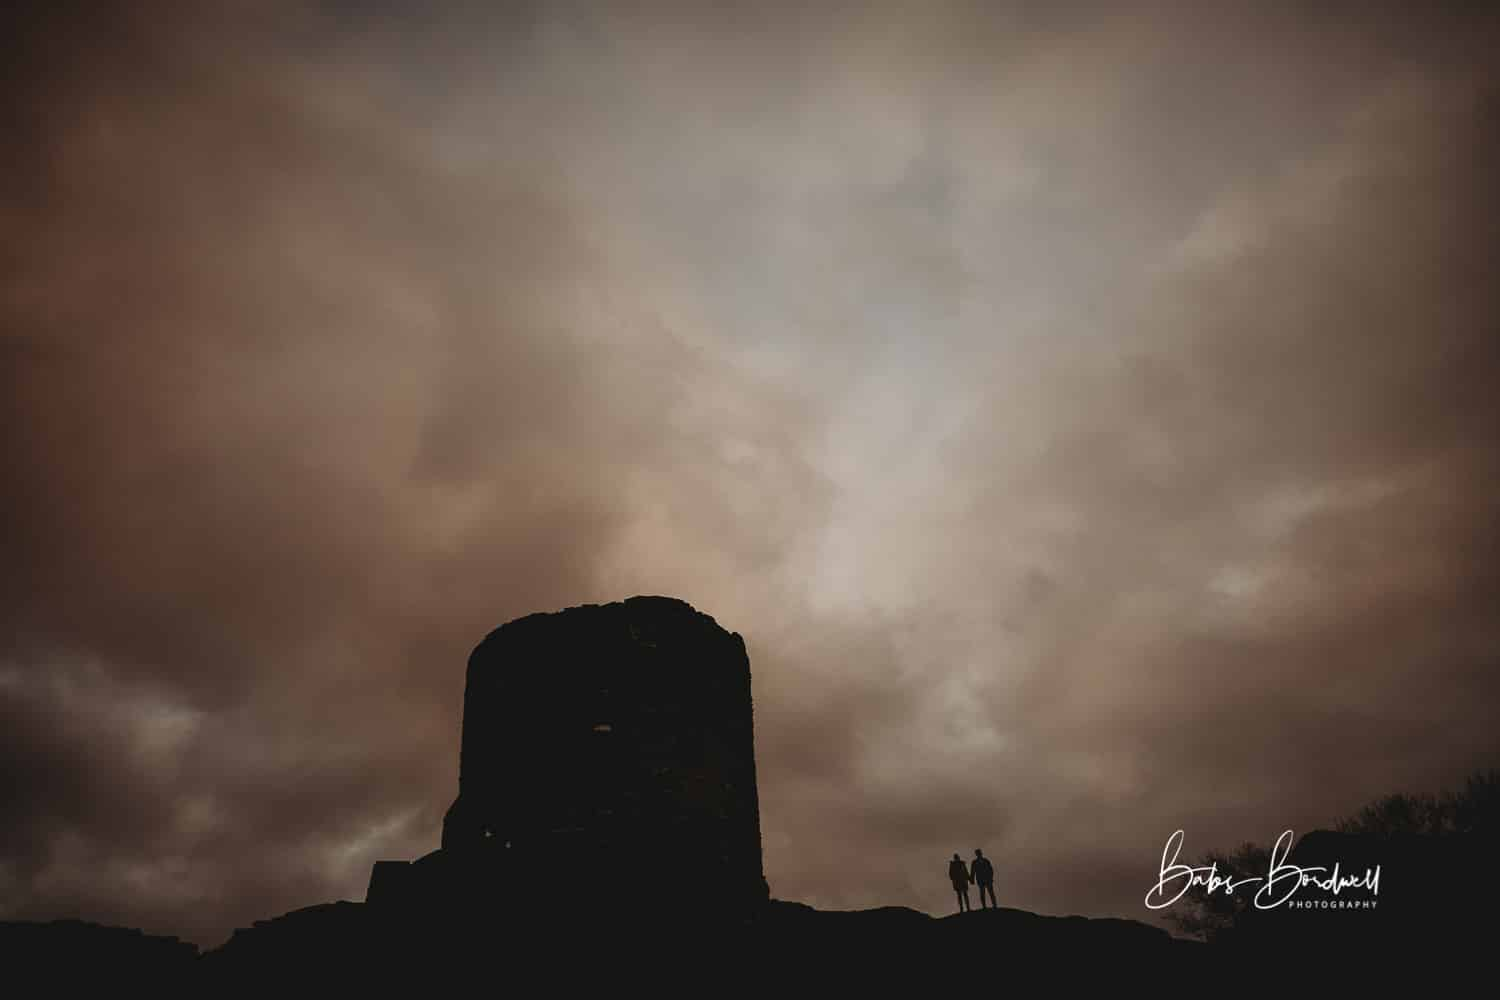 silhouette of couple next to castle with dramatic sky